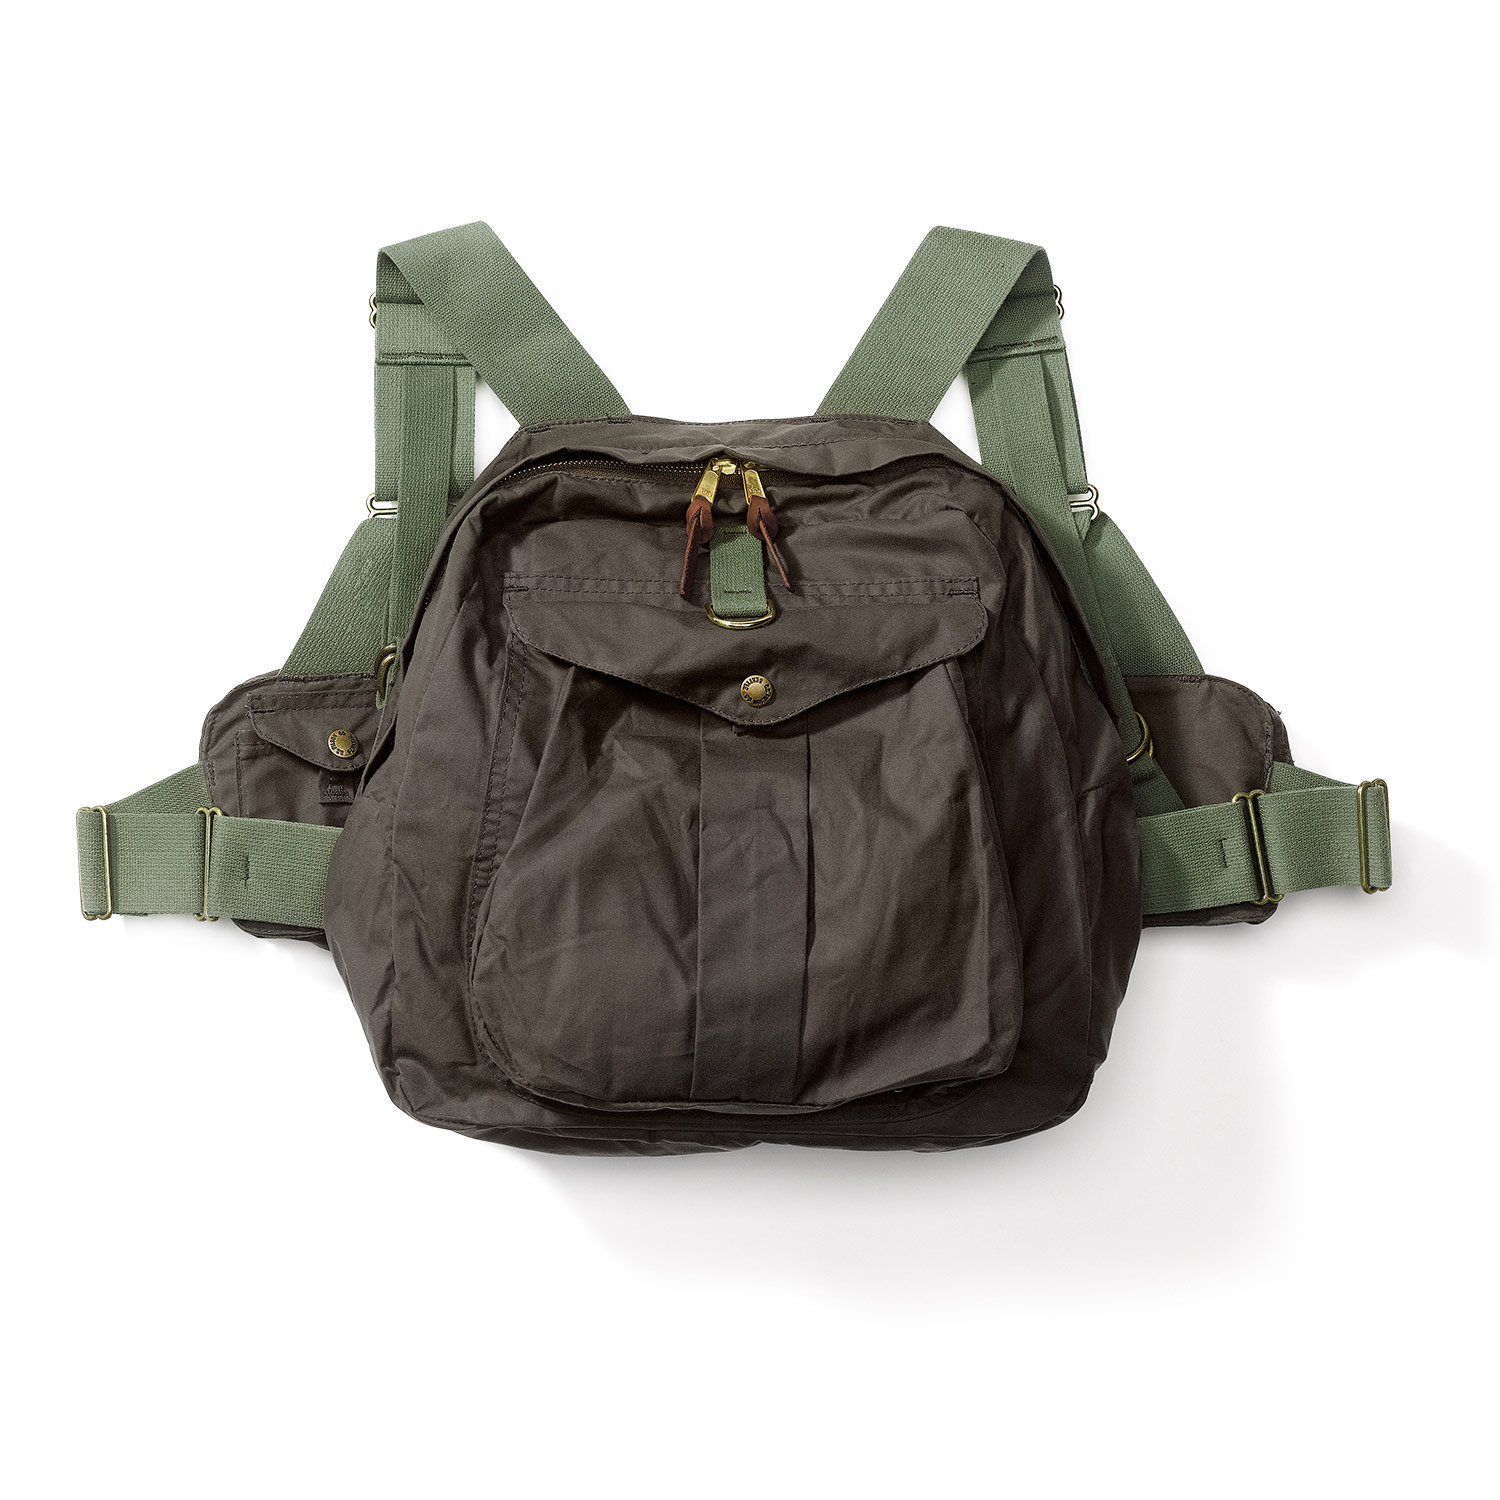 Filson Foul weather flyfishing vest #16002 3